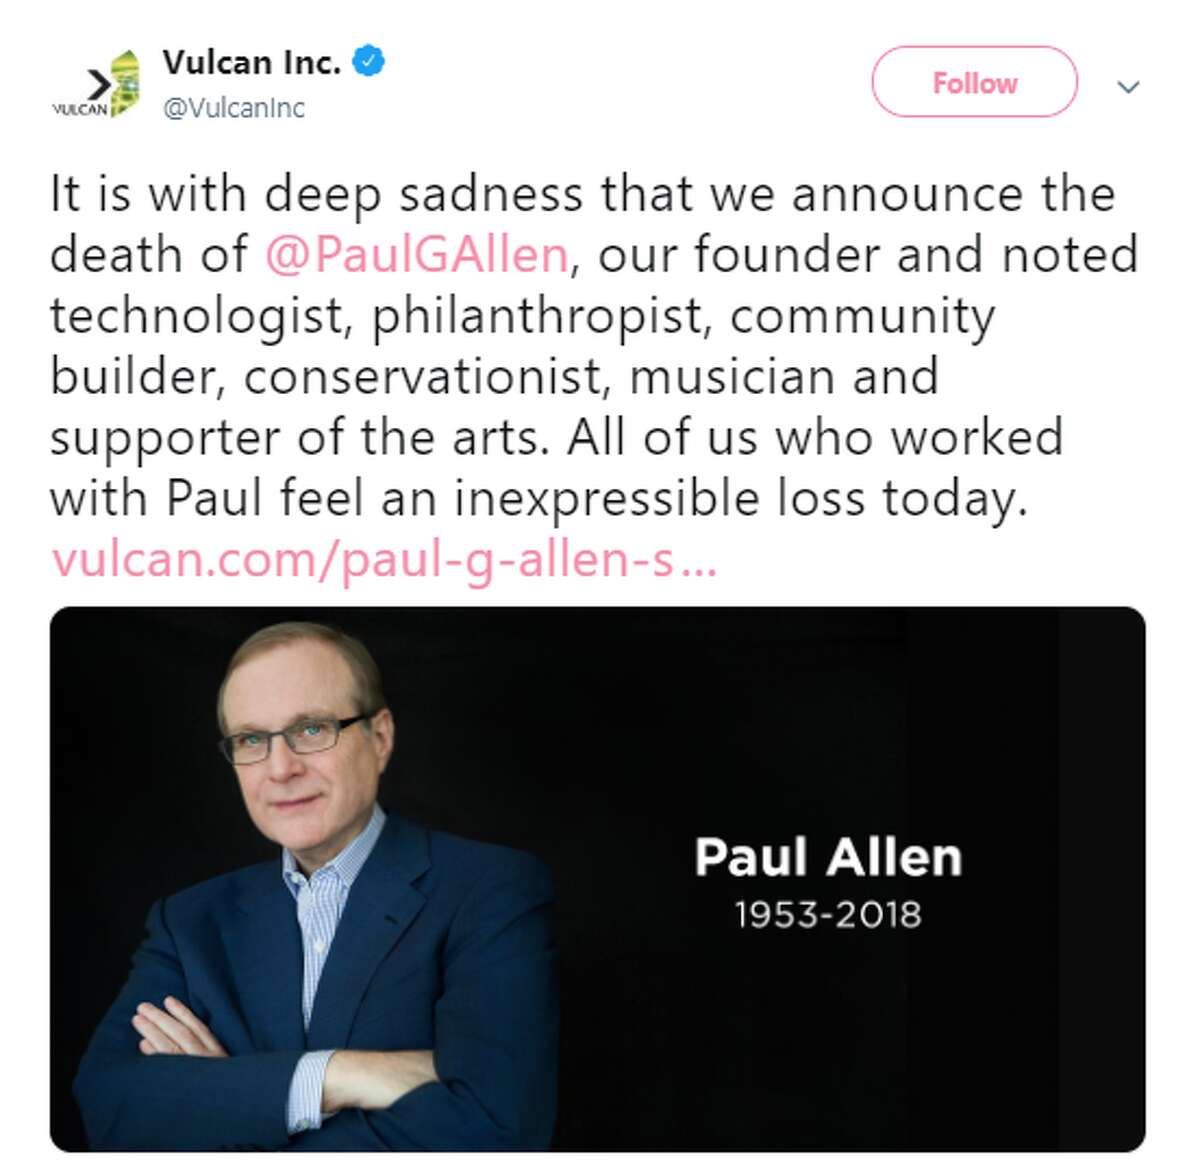 Paul Allen died on October 15, following complications in treating his non-Hodgkin's lymphoma, which he announced had returned at the beginning of October.